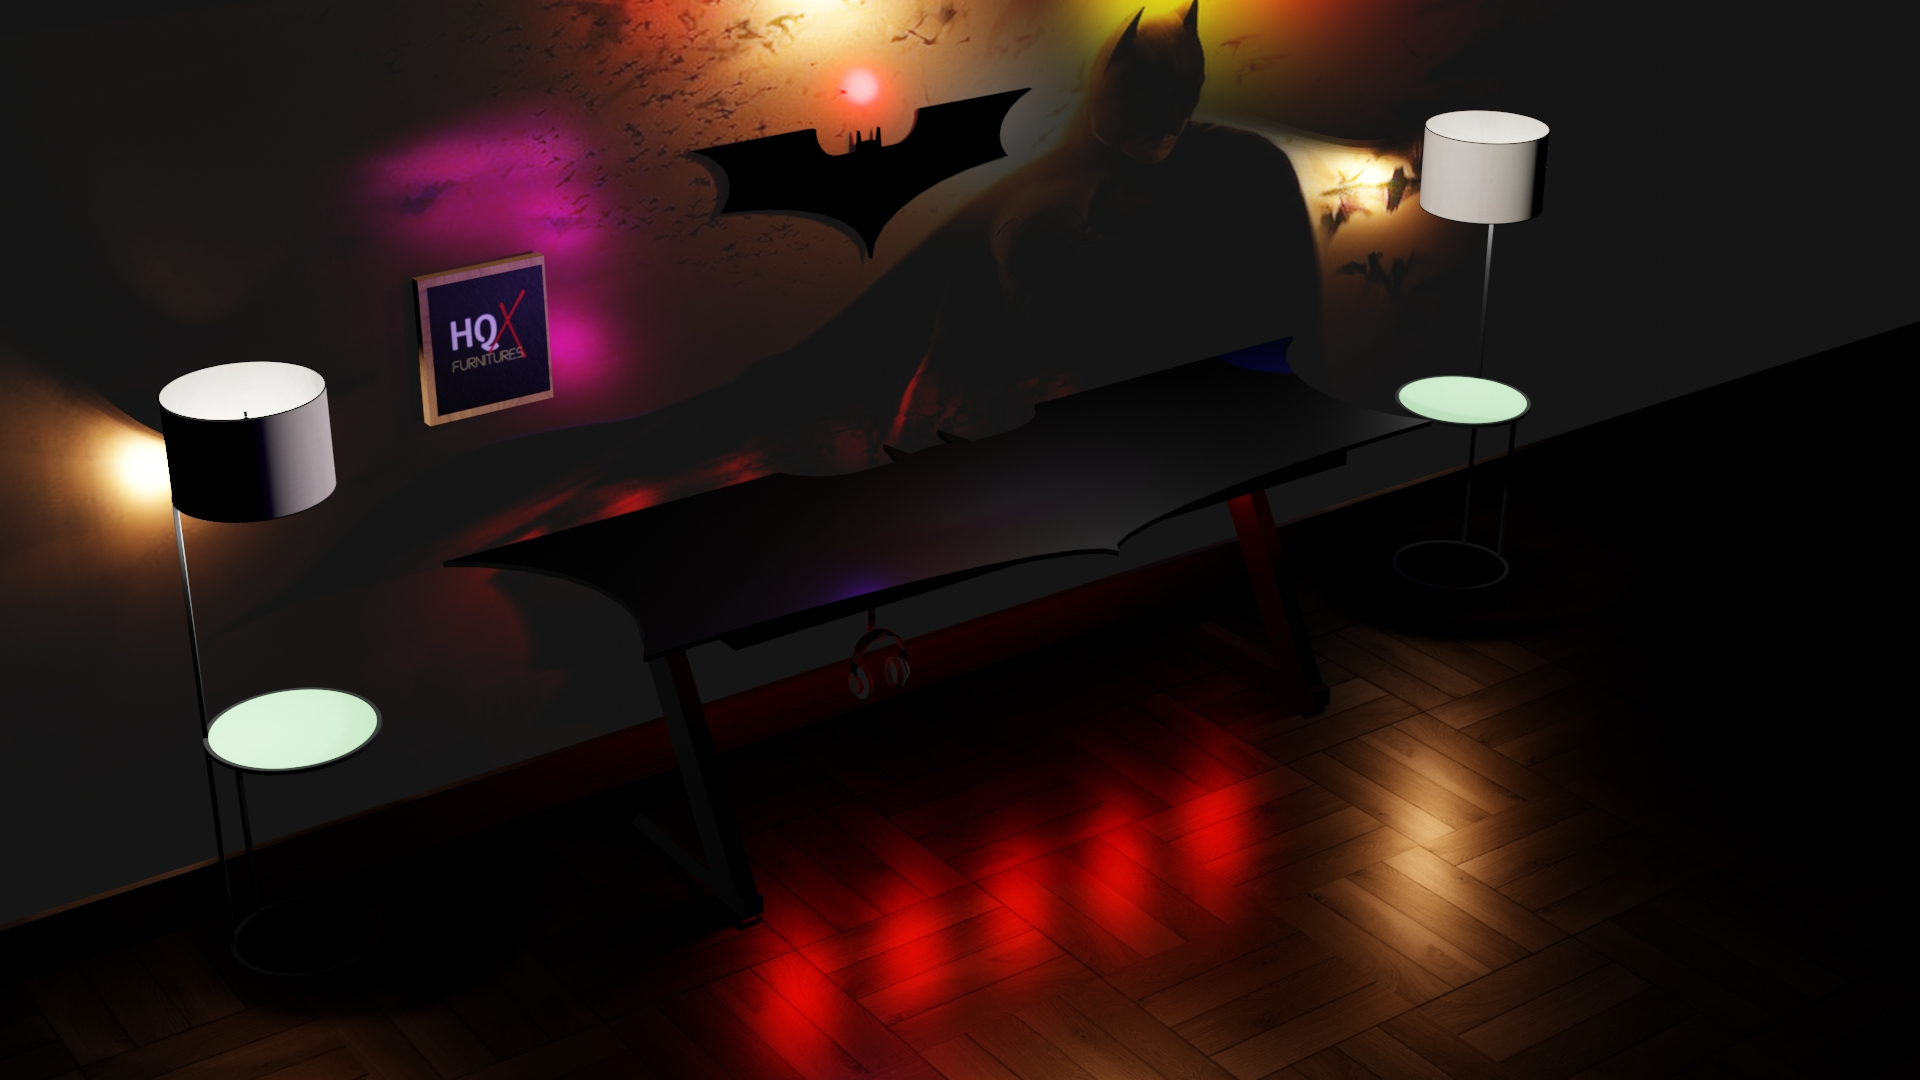 Professional Black Gaming Table - Batman Design Gaming Table - Pc Laptop Gamers Table - RGB Remote Control Lights on Table - Imported Black Wood Surface & Z-metal Frame - Headphone Holder - Wire Management hooks - High Quality Furniture